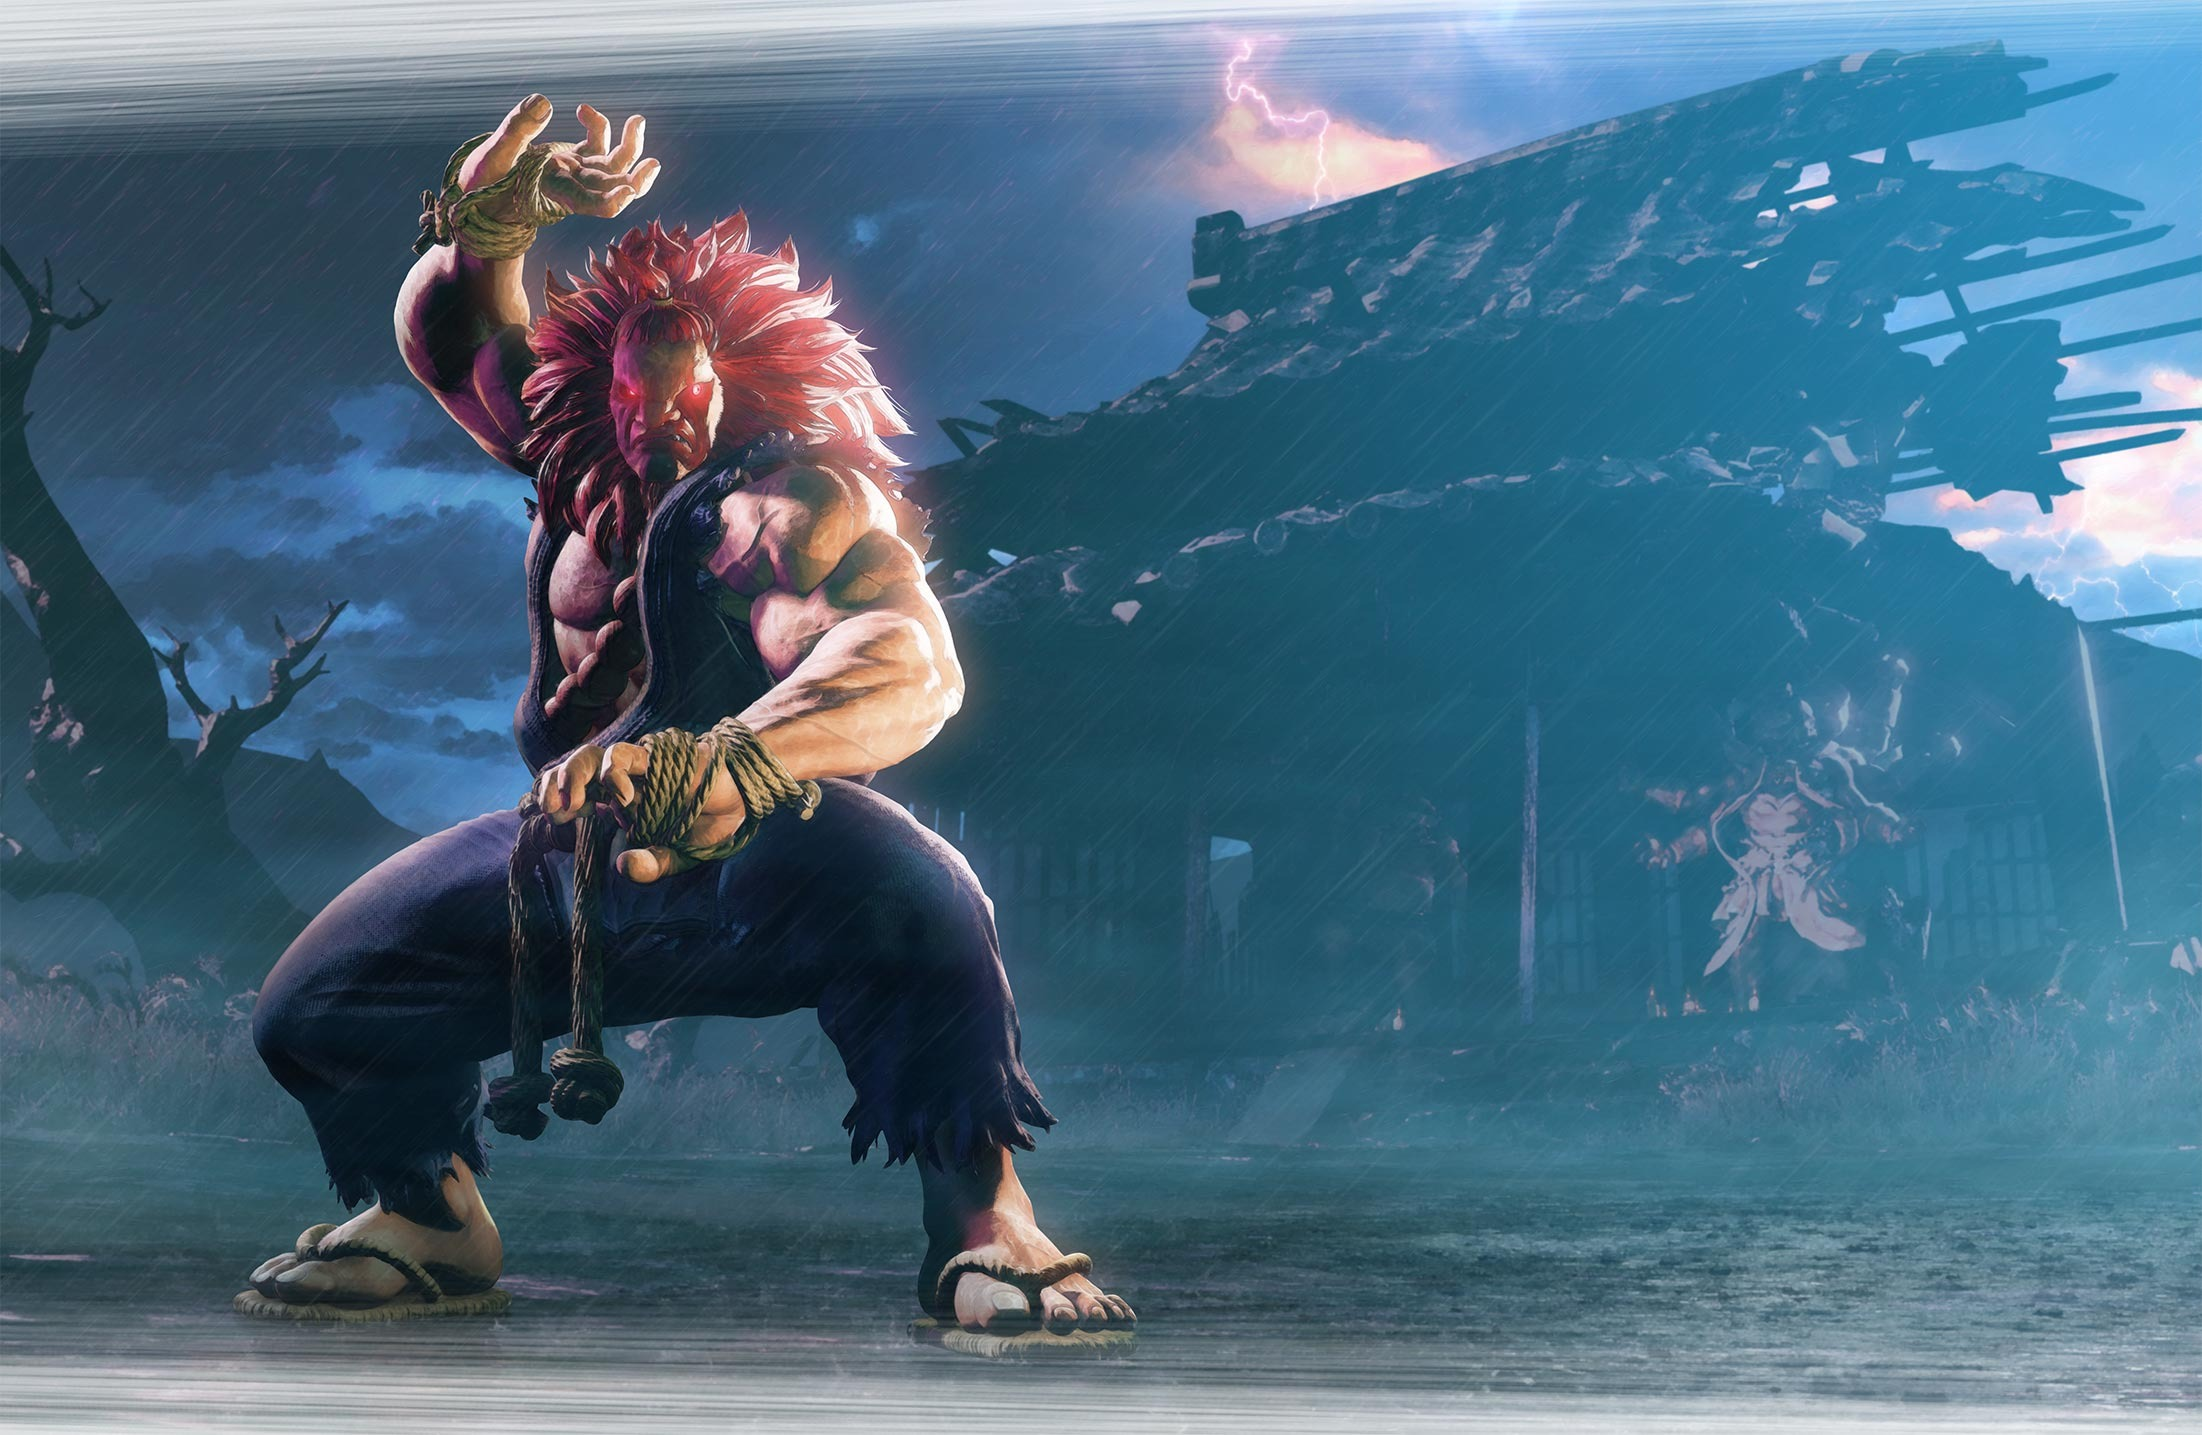 Tekken 7 command list, controls startup, guide, codes, list